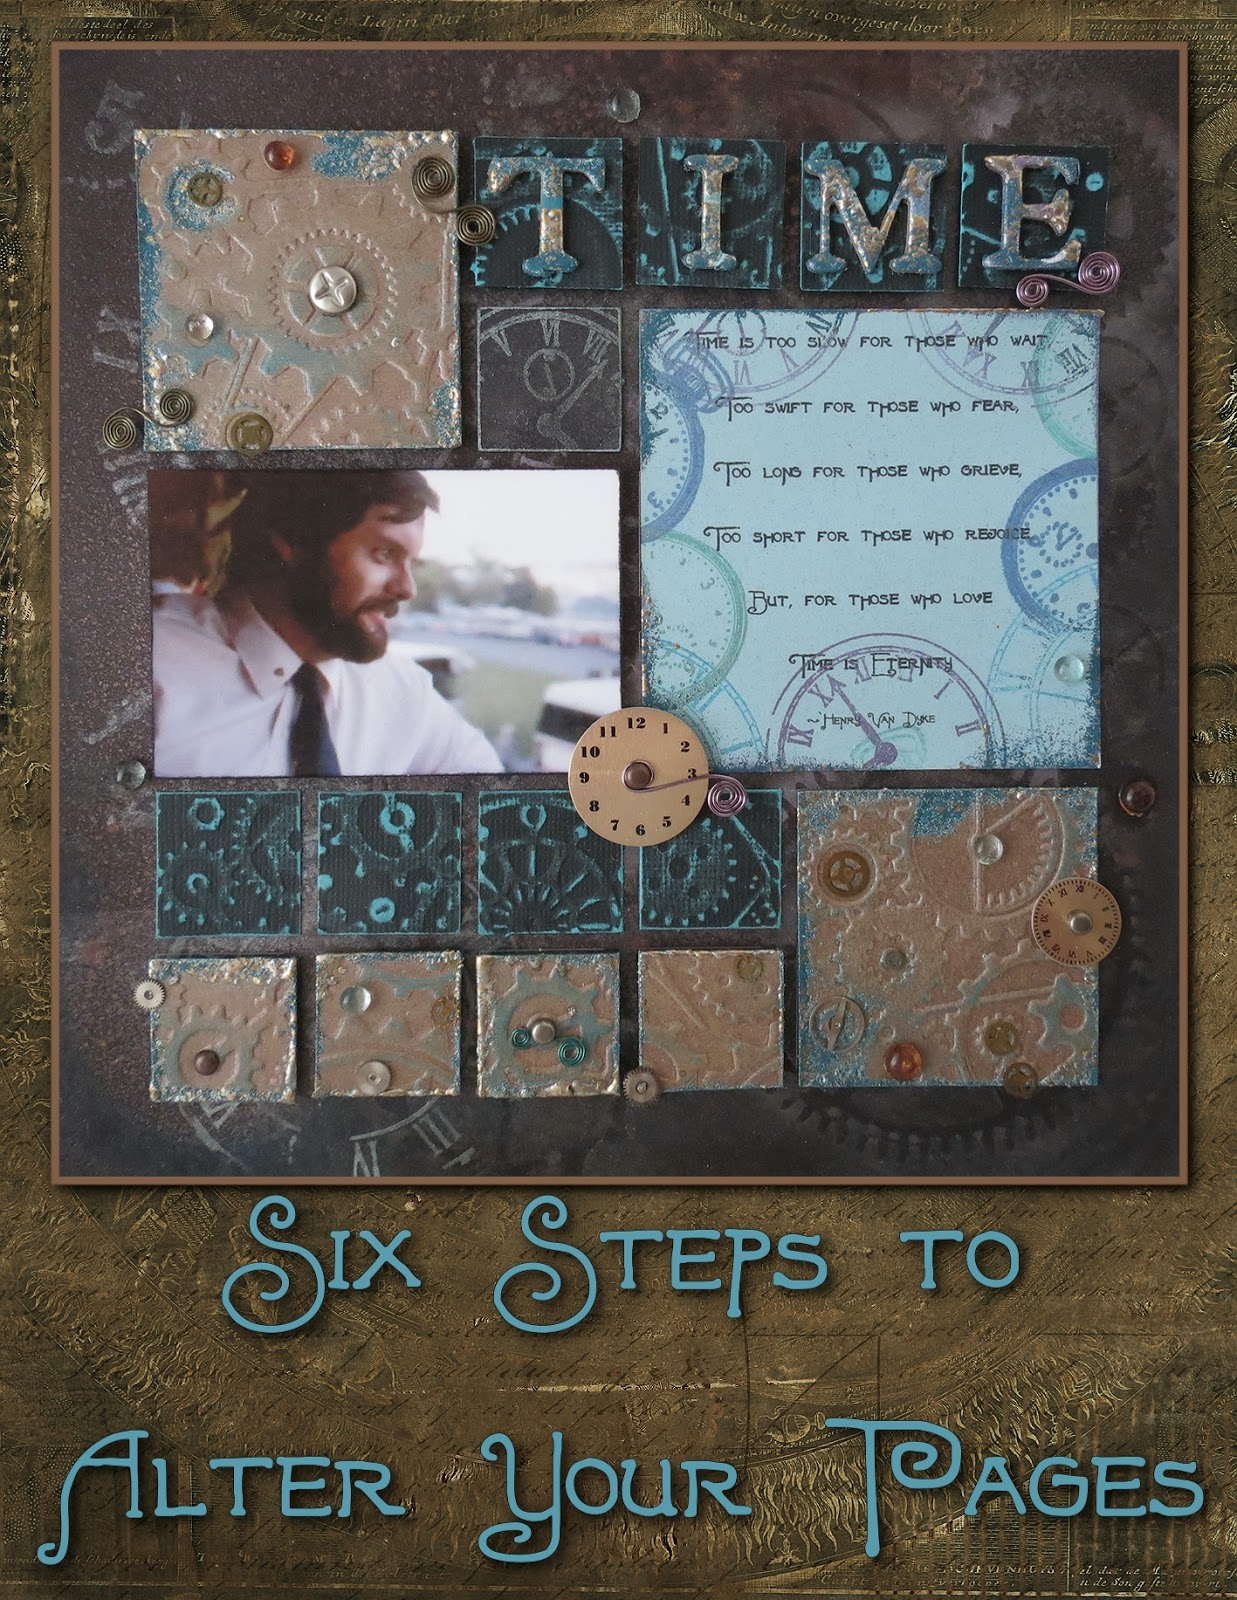 http://blog.tamipotter.com/design_each_moment/2014/02/six-steps-to-alter-your-pages.html